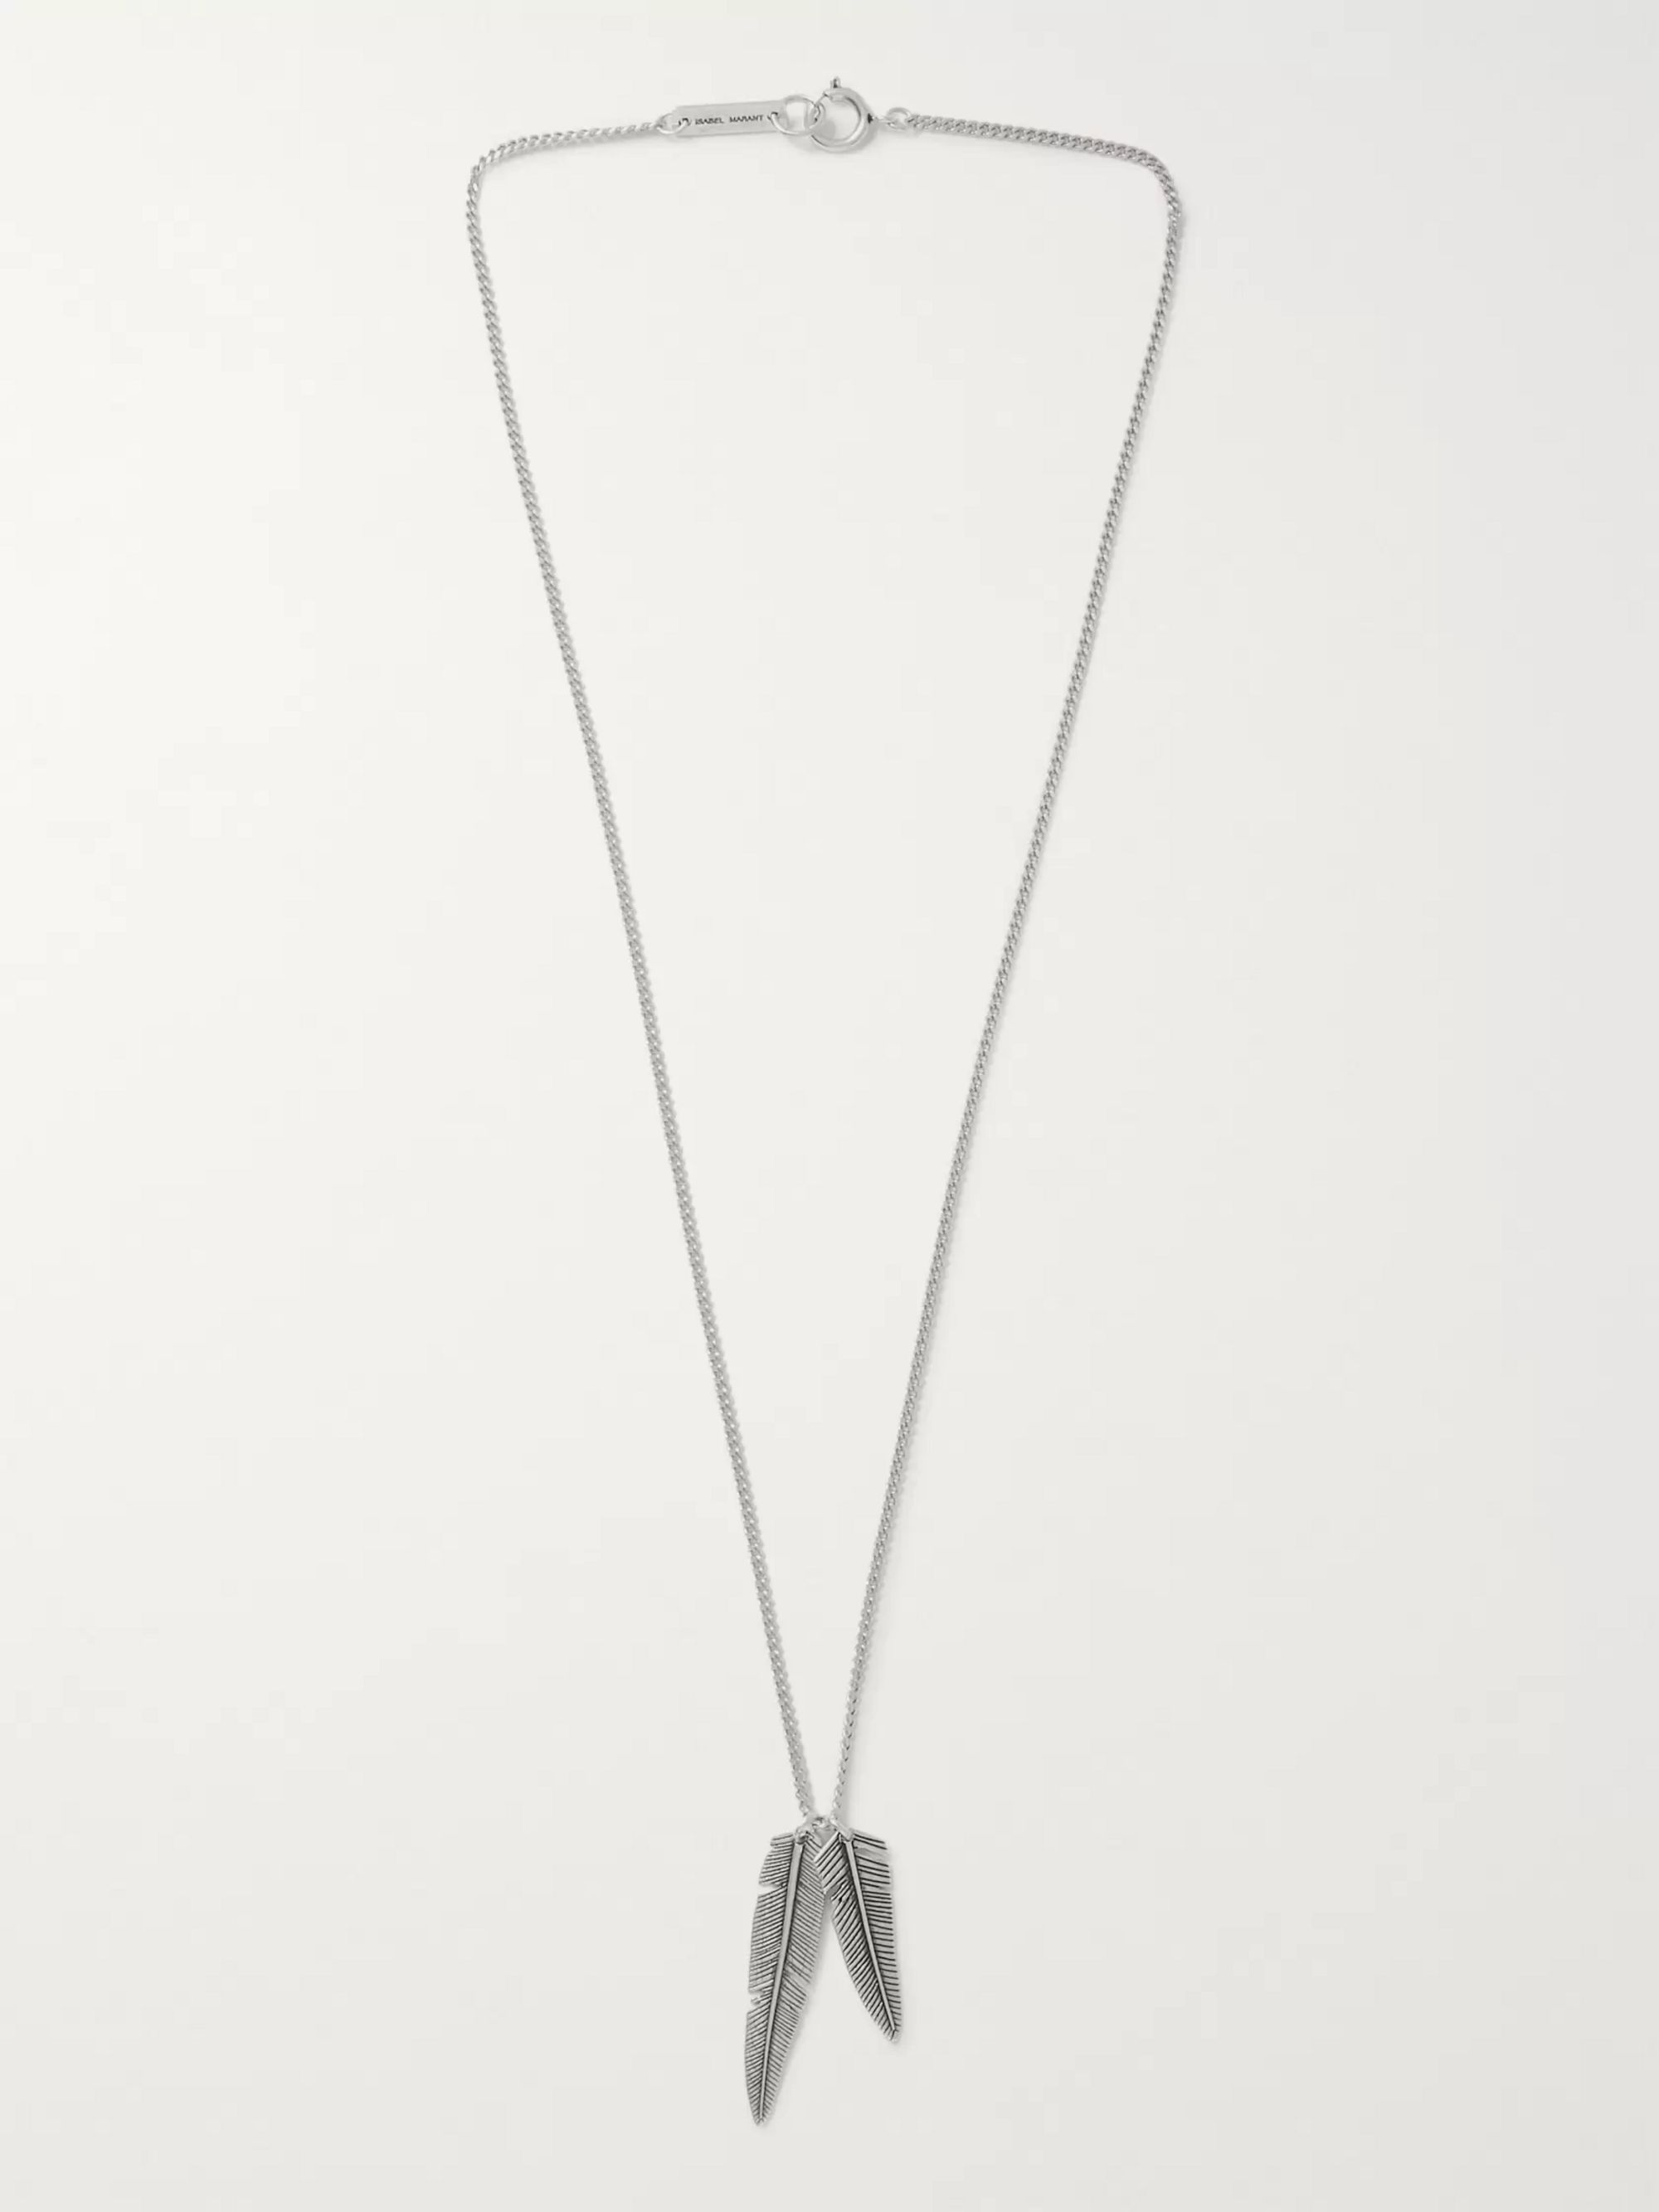 Isabel Marant Silver-Tone Necklace